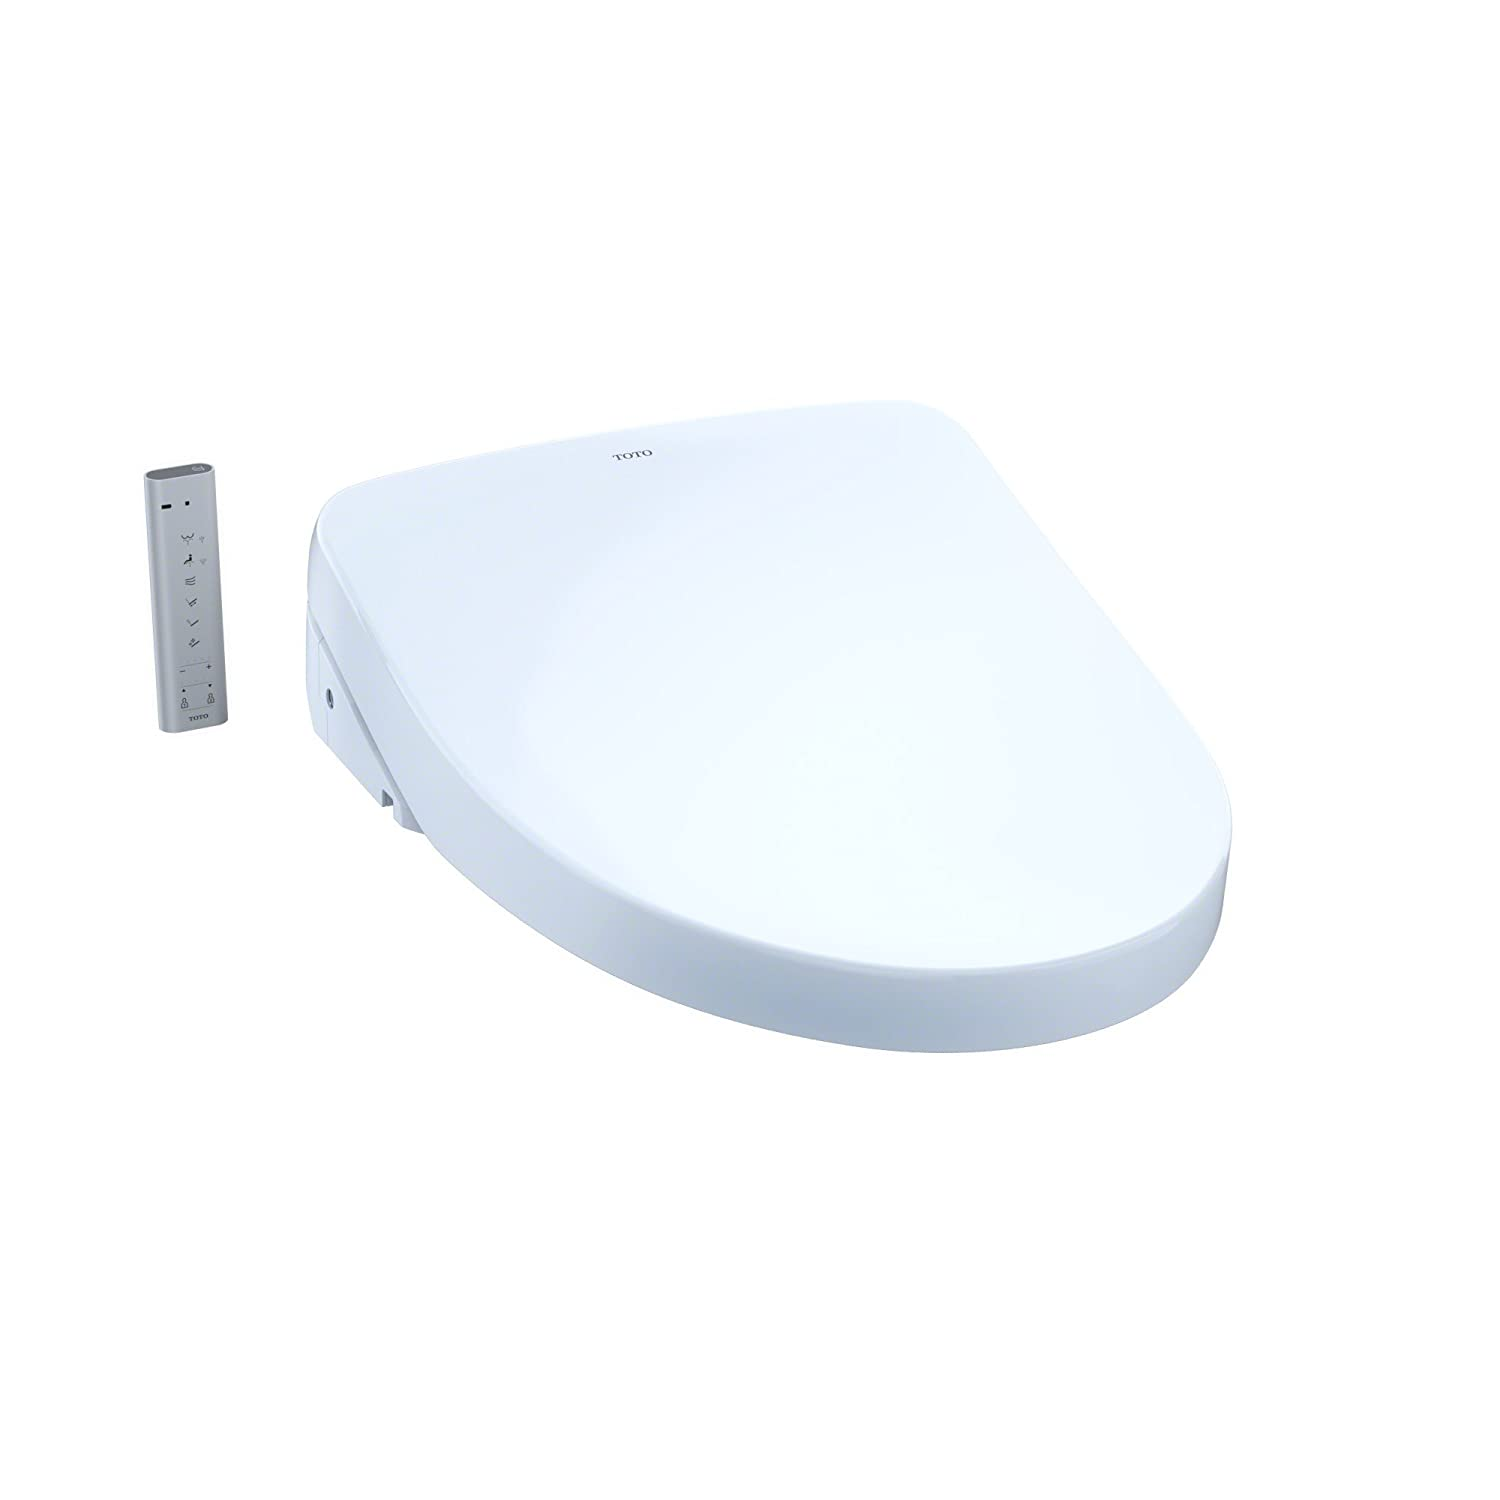 TOTO SW3056#01 S550e WASHLET Electronic Bidet Toilet Seat with ...